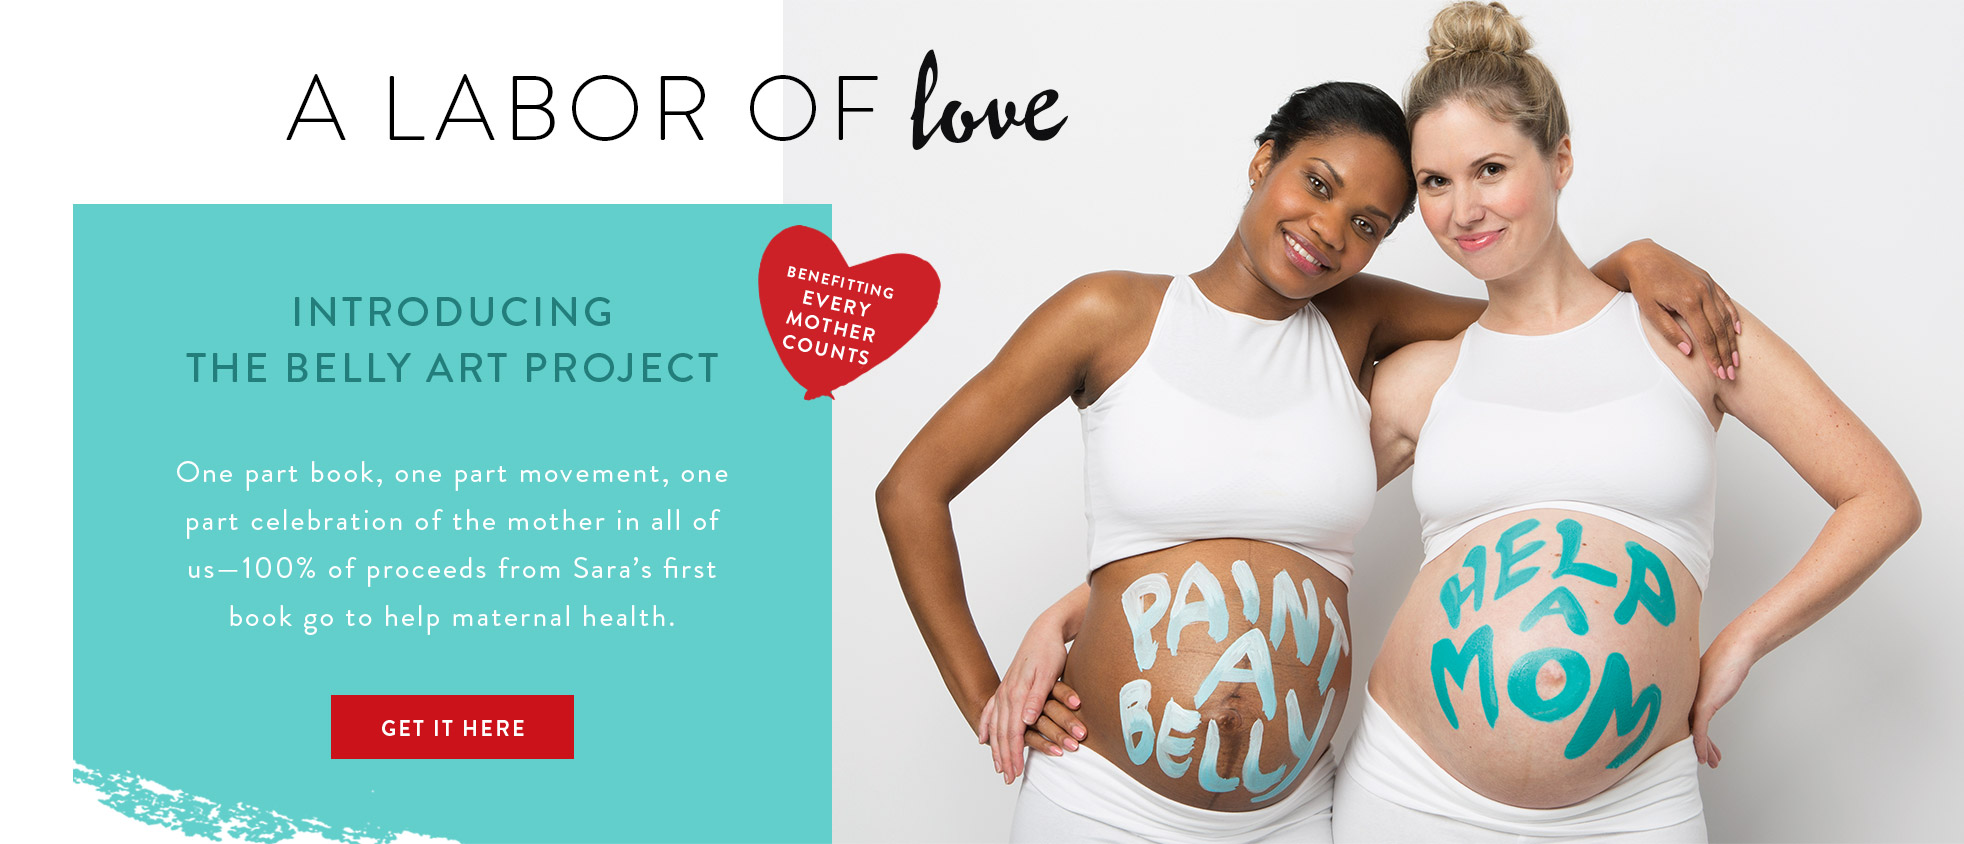 A labor of love. Introducing The Belly Art Project (benefitting Every Mother Counts). One part book, one part movement, one part celebration of the mother in all of us - 100% of proceeds from Sara's first book go to help maternal heath. GET IT HERE.